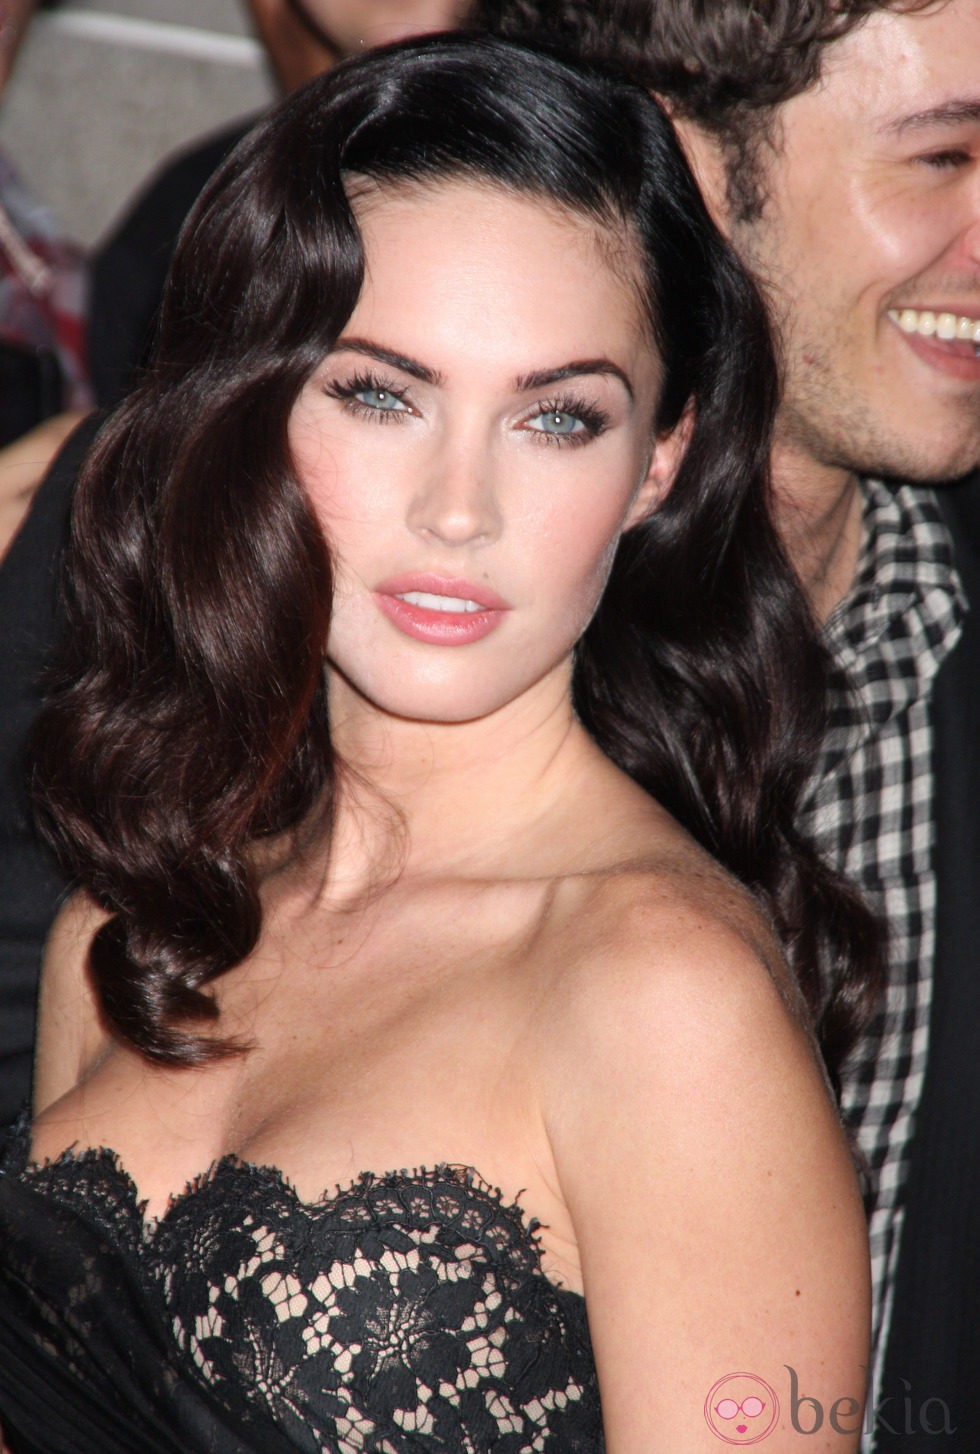 Megan Fox con largas pestañas postizas